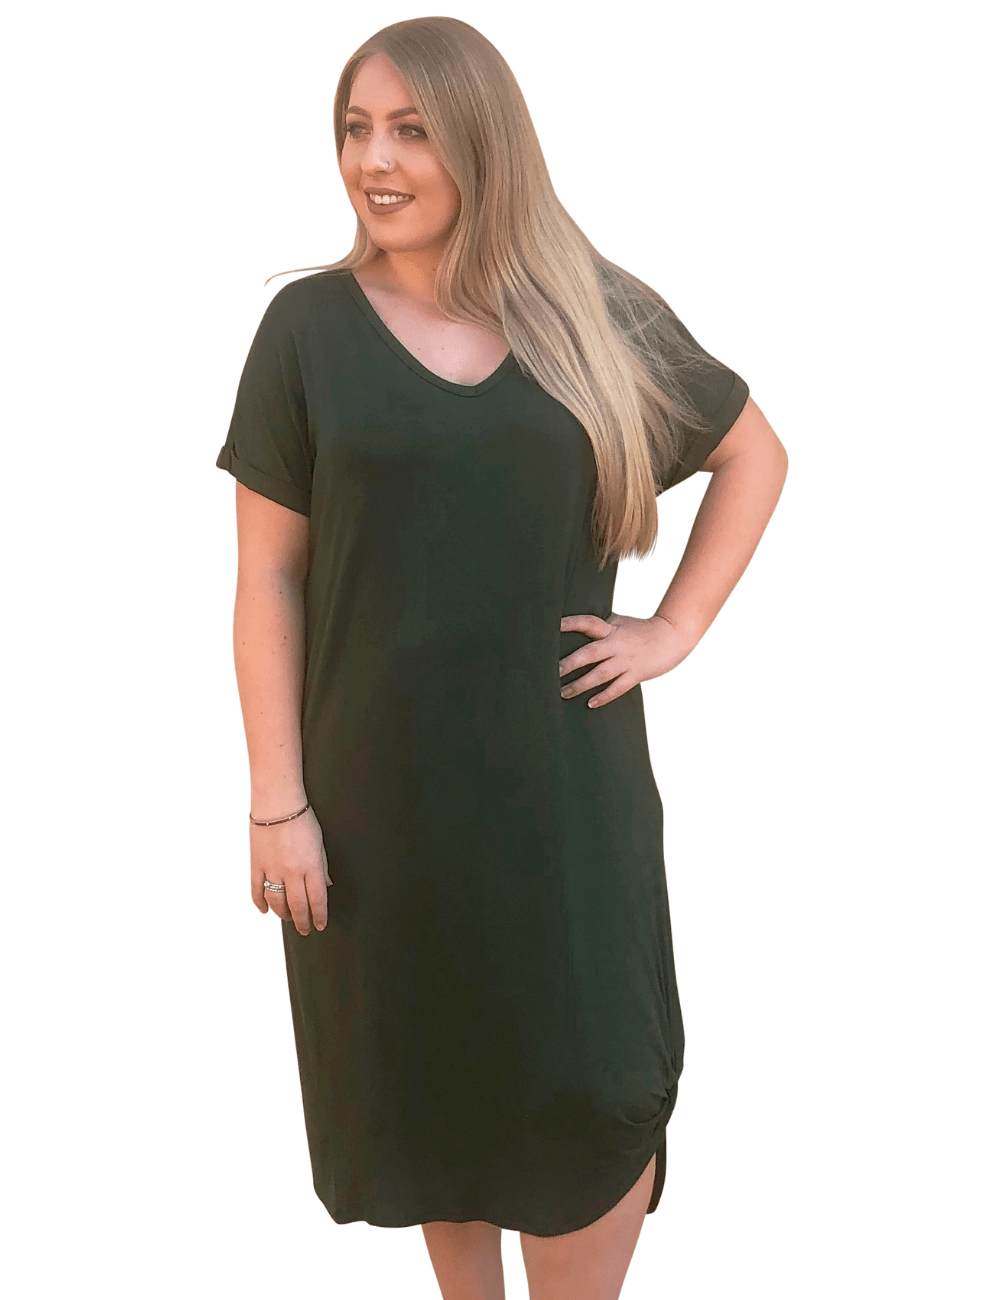 Green T-Shirt Dress - Curvy Clothes Australia - Afterpay Laybuy & Humm Online